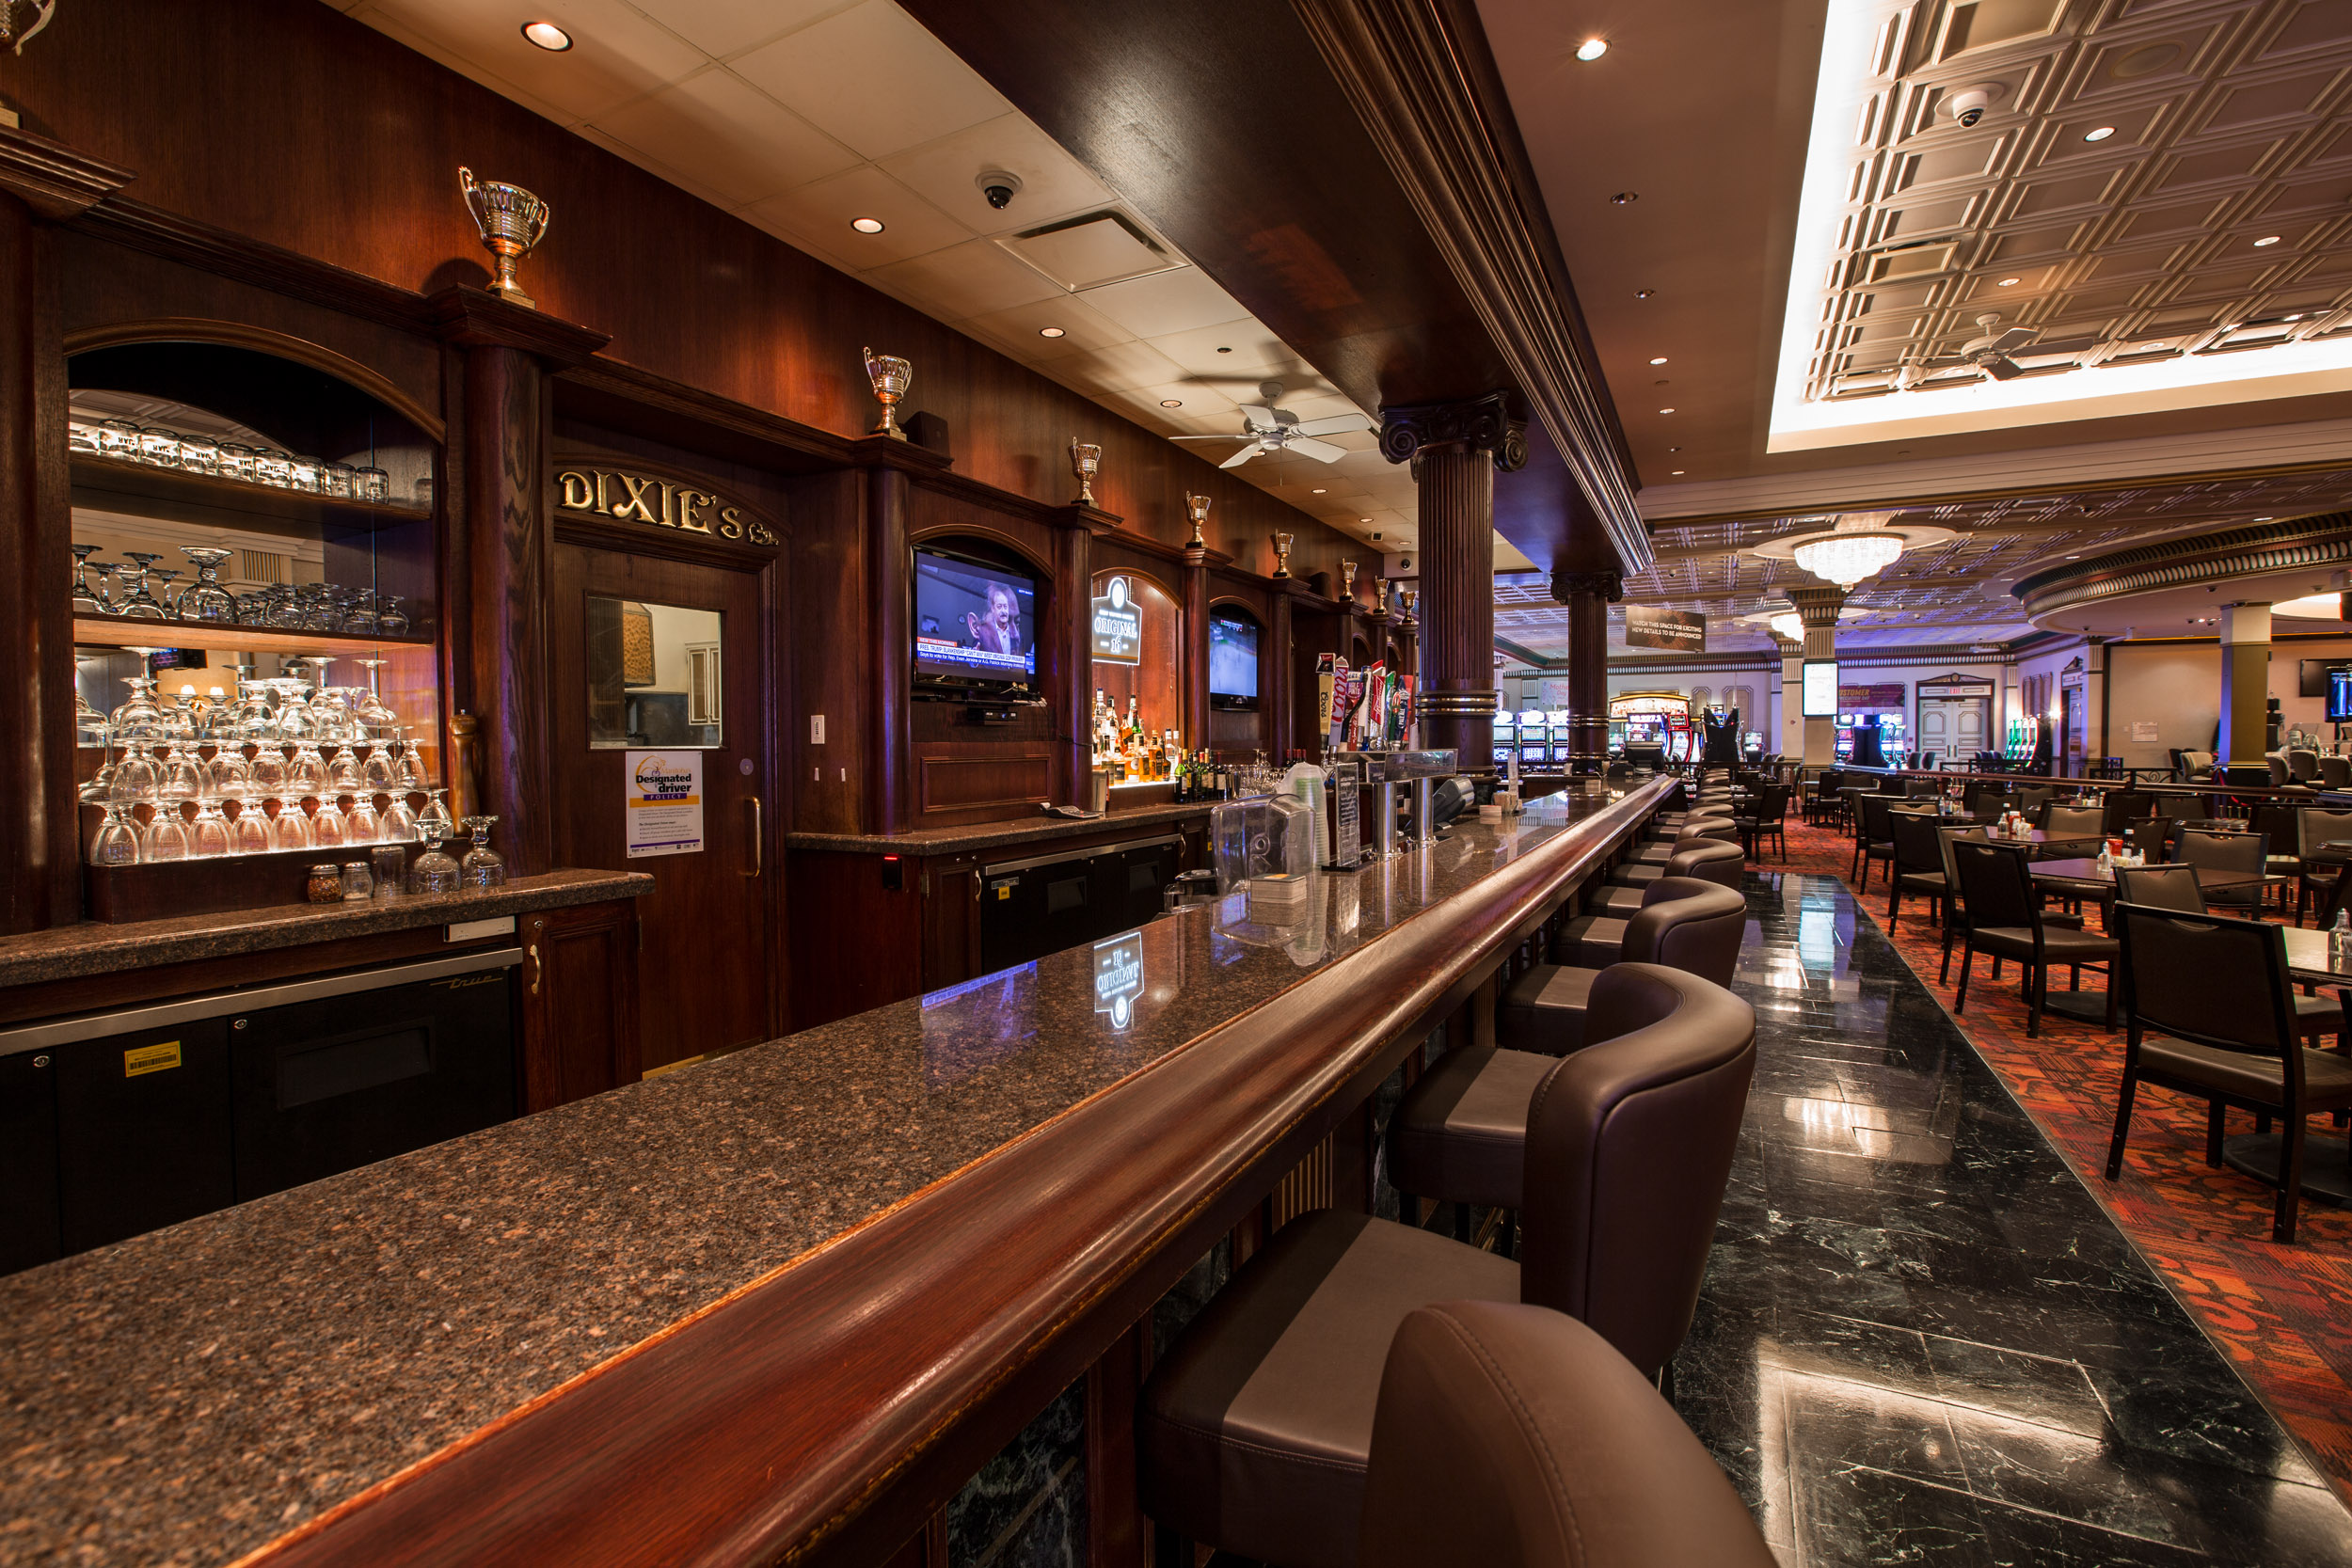 McPhillips Station Casino Dixie's Lounge bar picture